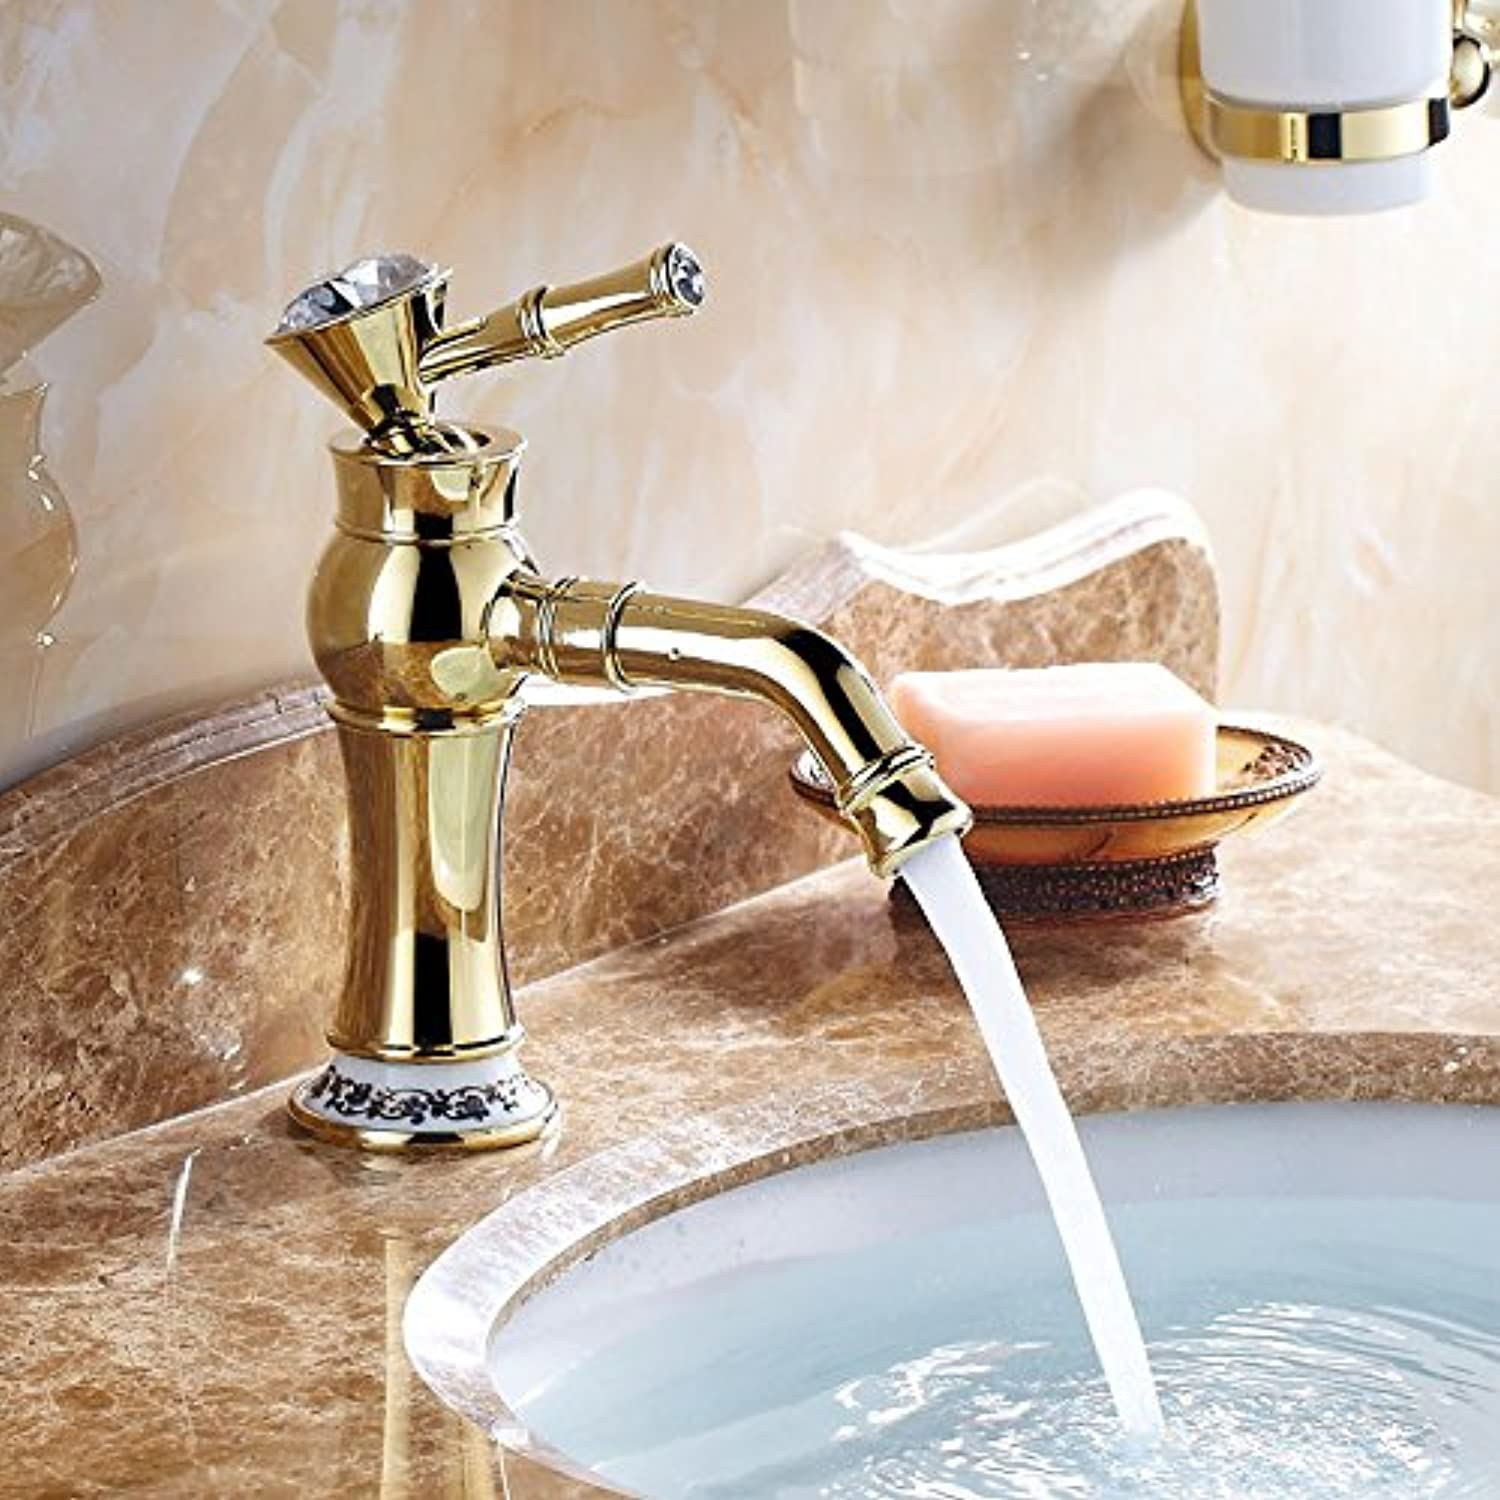 LHS OU Dian gold bluee and white porcelain basin faucet hot and cold faucet